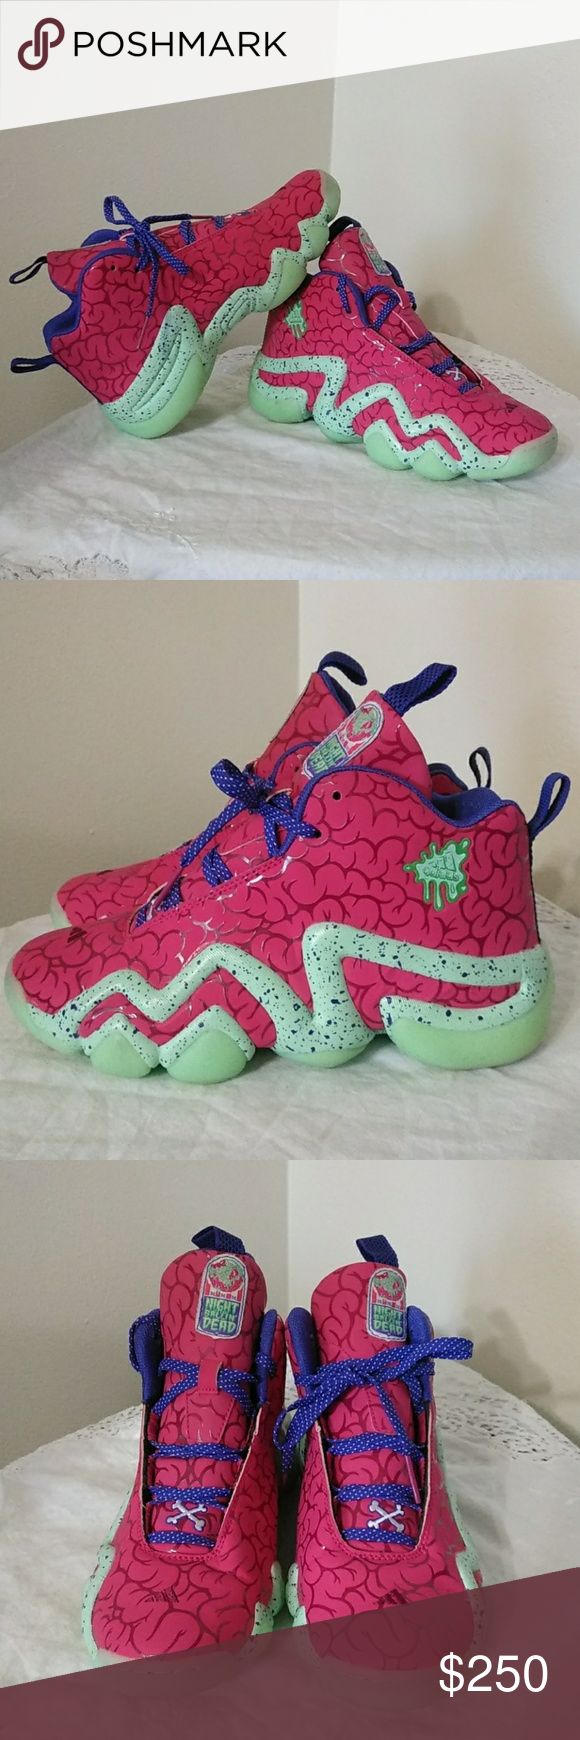 newest 2986f 44eea Adidas Crazy 8 RARE Night of the Ballin Dead s GLOW IN THE DARK ALL MINT  GREEN AREAS EUC NO BOX LIMITED EDT. adidas Shoes Athletic Shoes